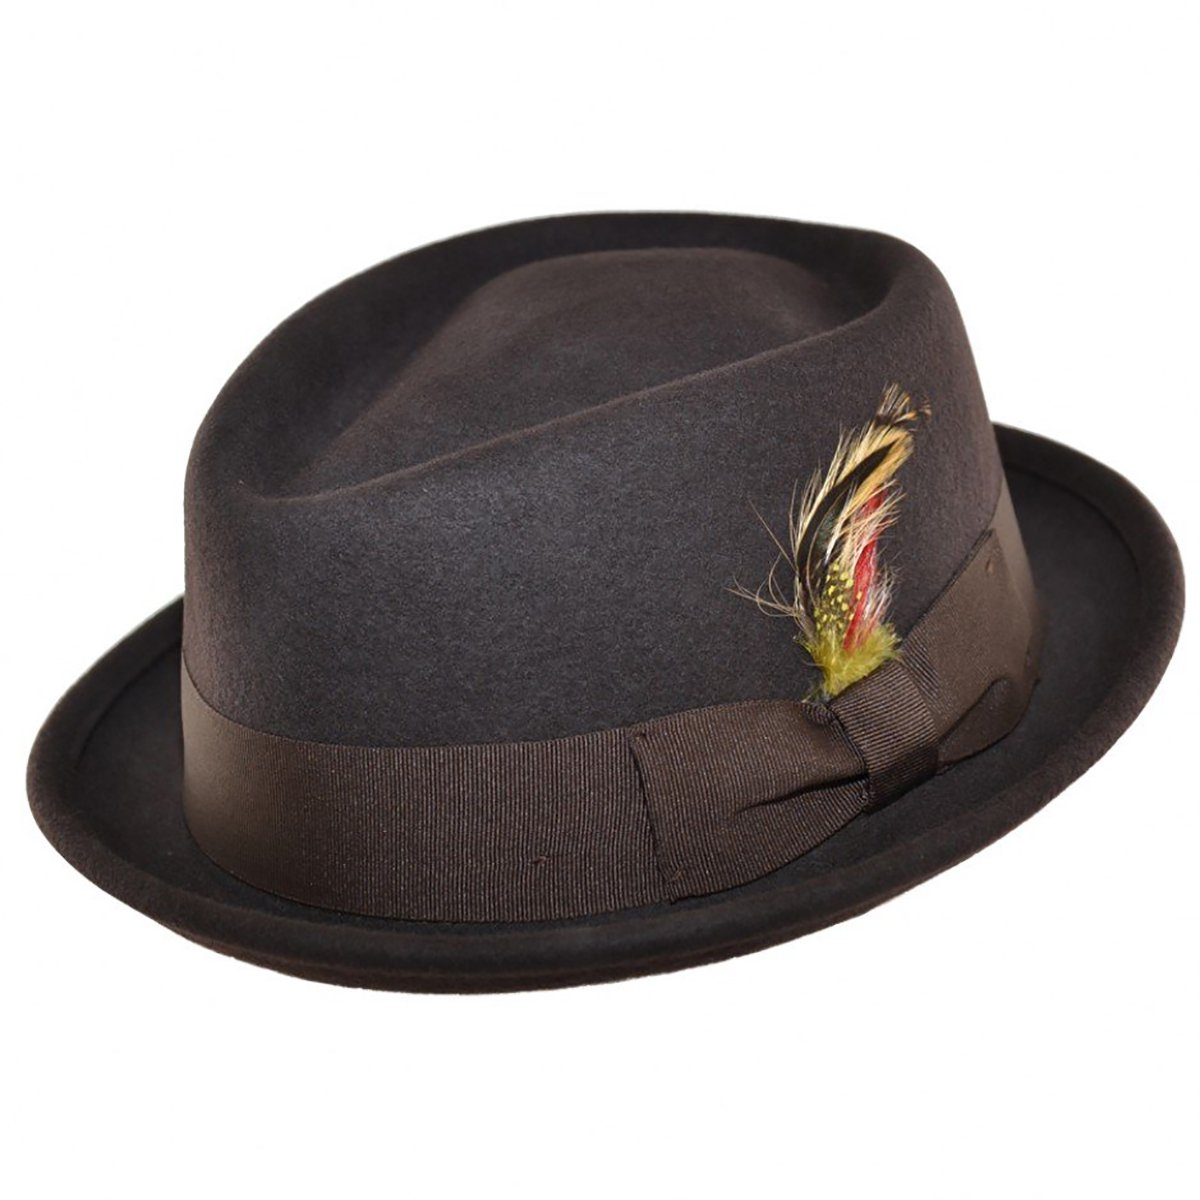 MAZ Felt Diamond Crown Pork Pie Hat - Brown